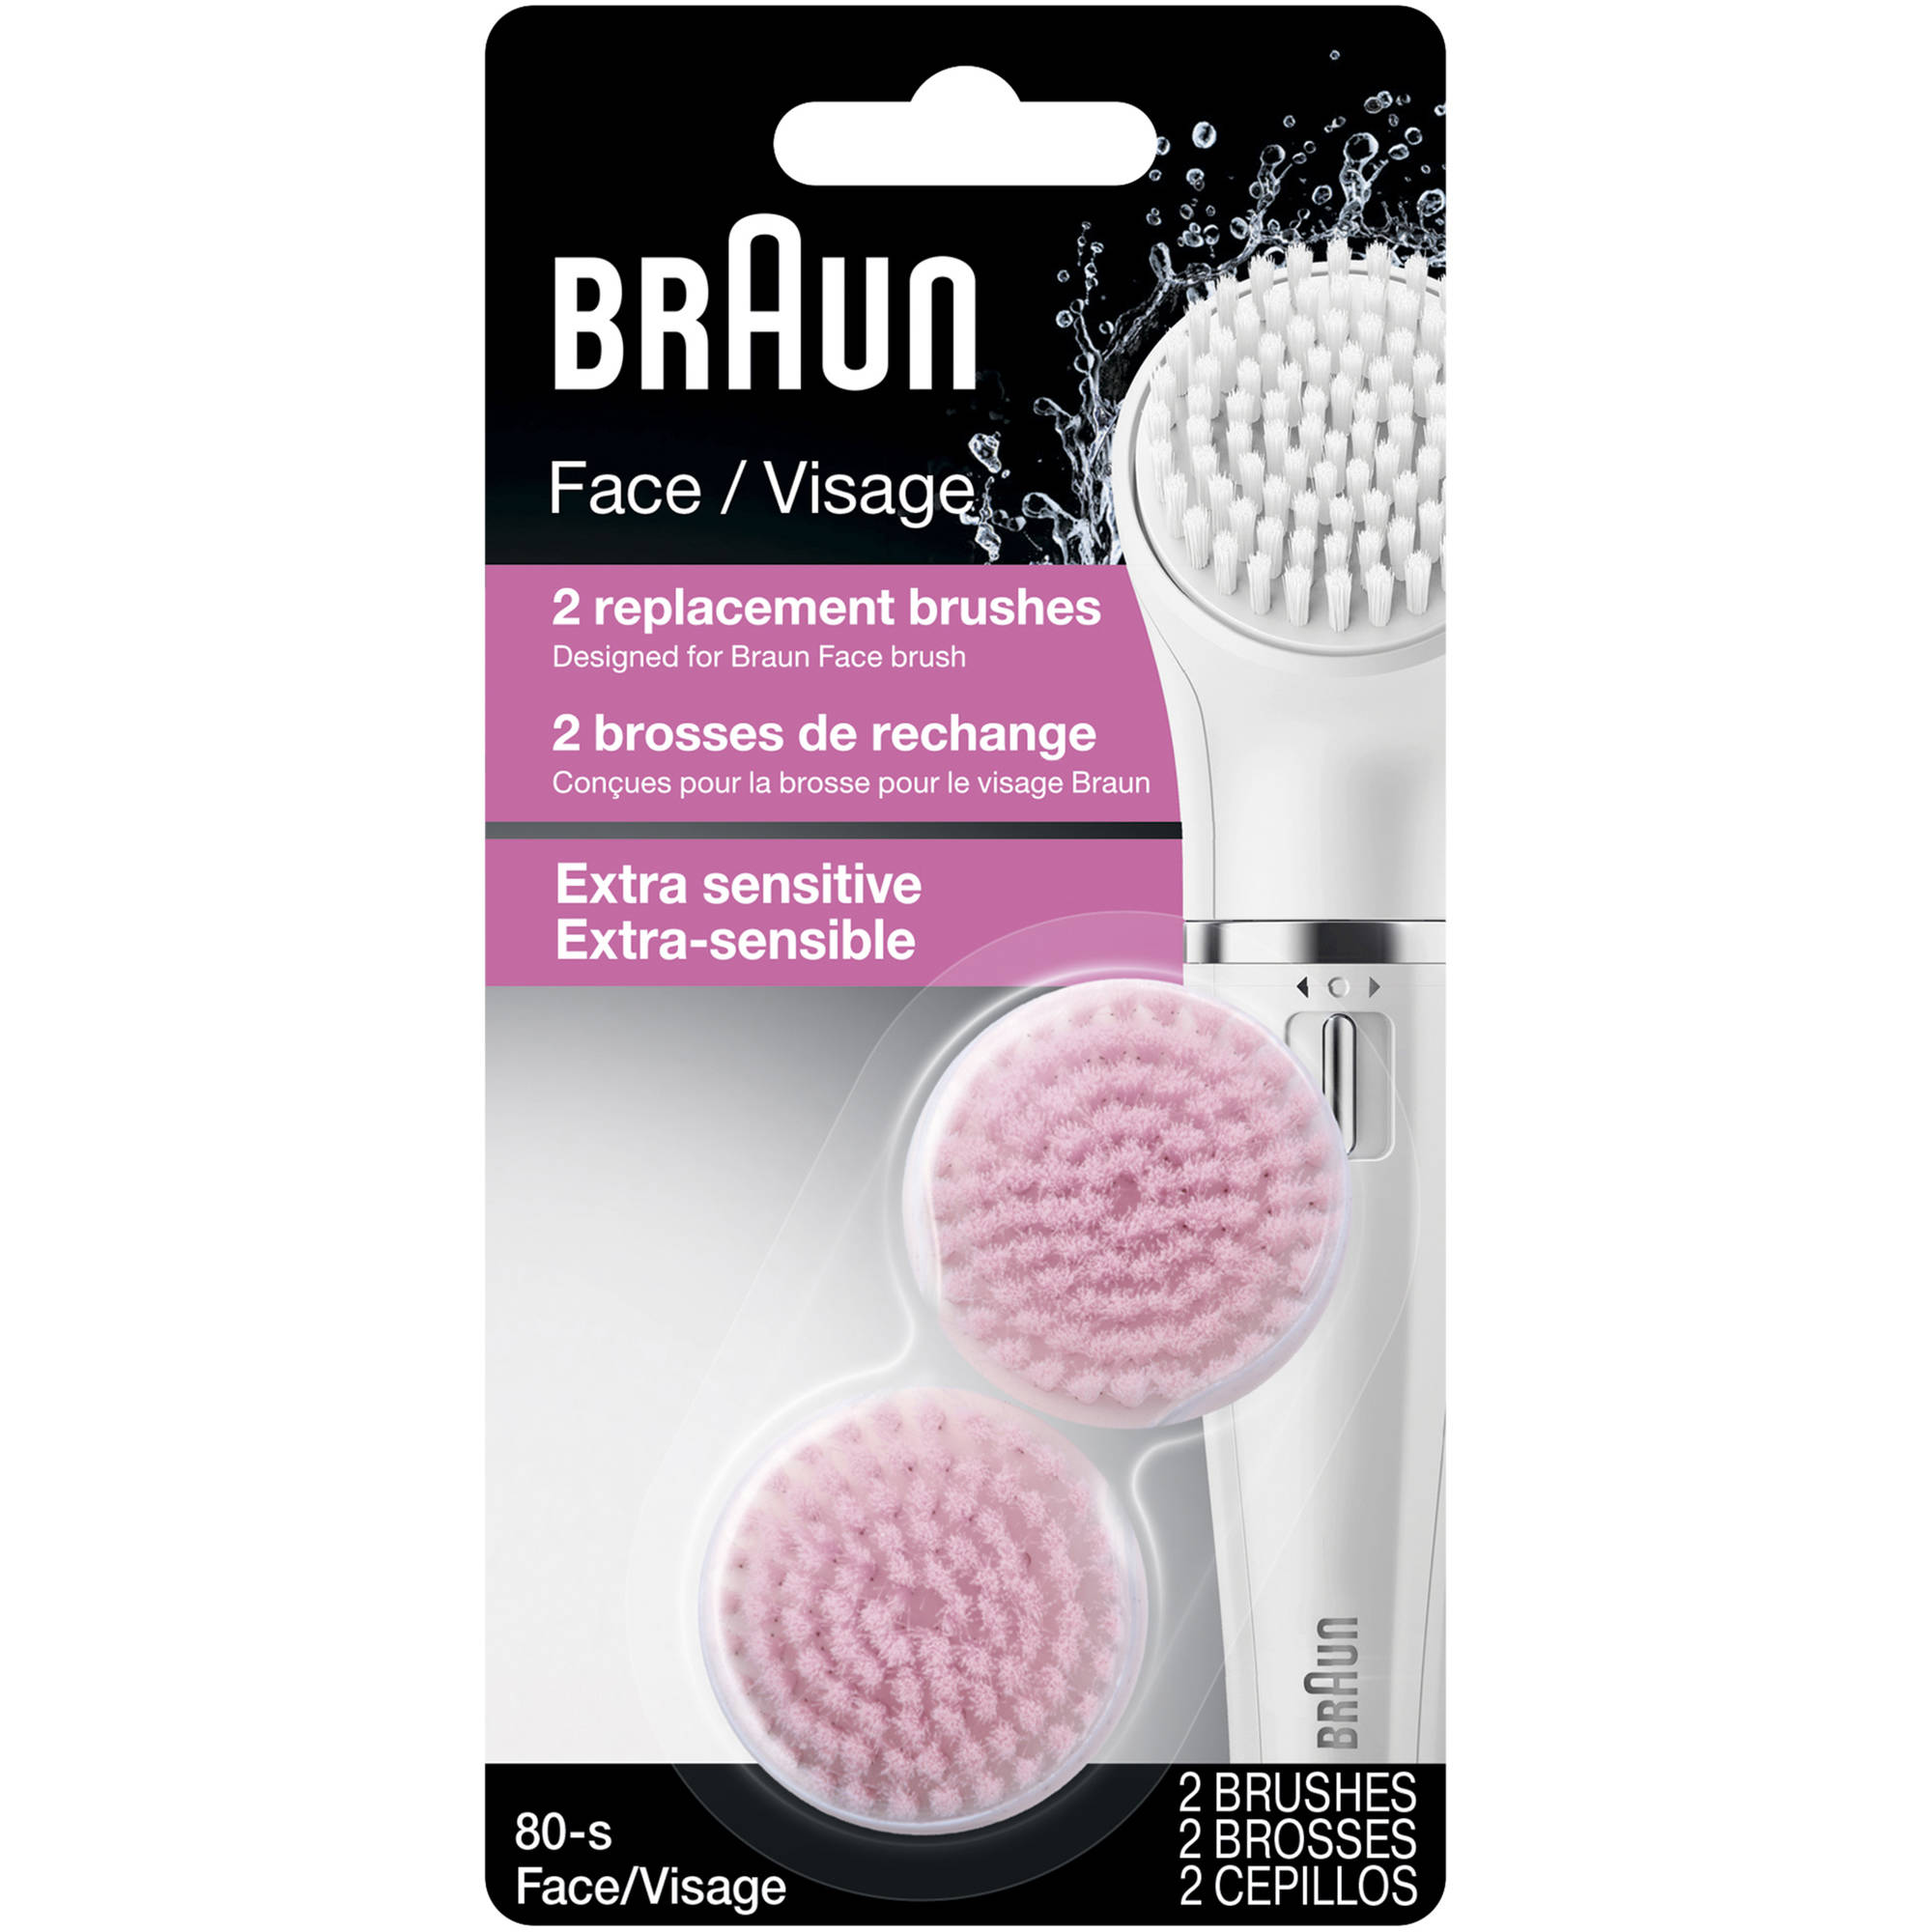 Braun Face 80-s Extra Sensitive Replacement Brushes, 2 count